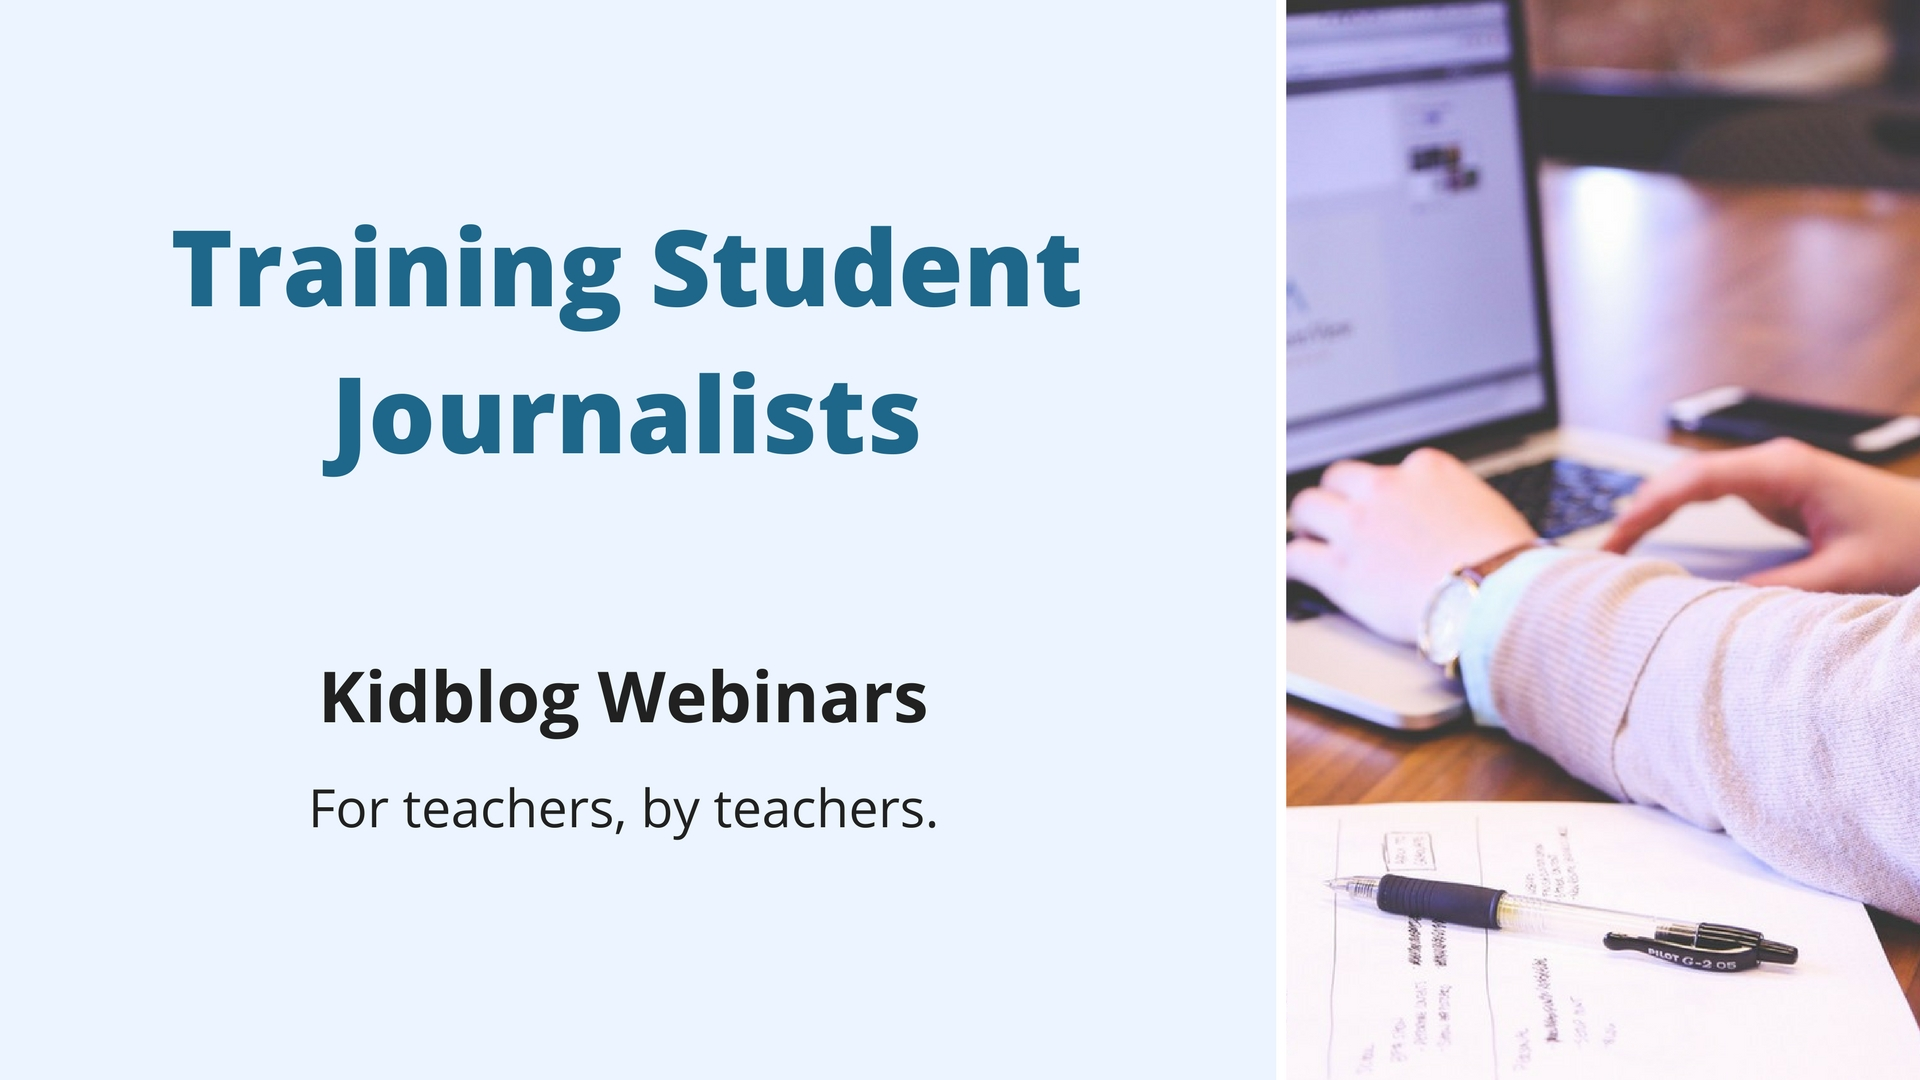 Webinar: Training Student Journalists